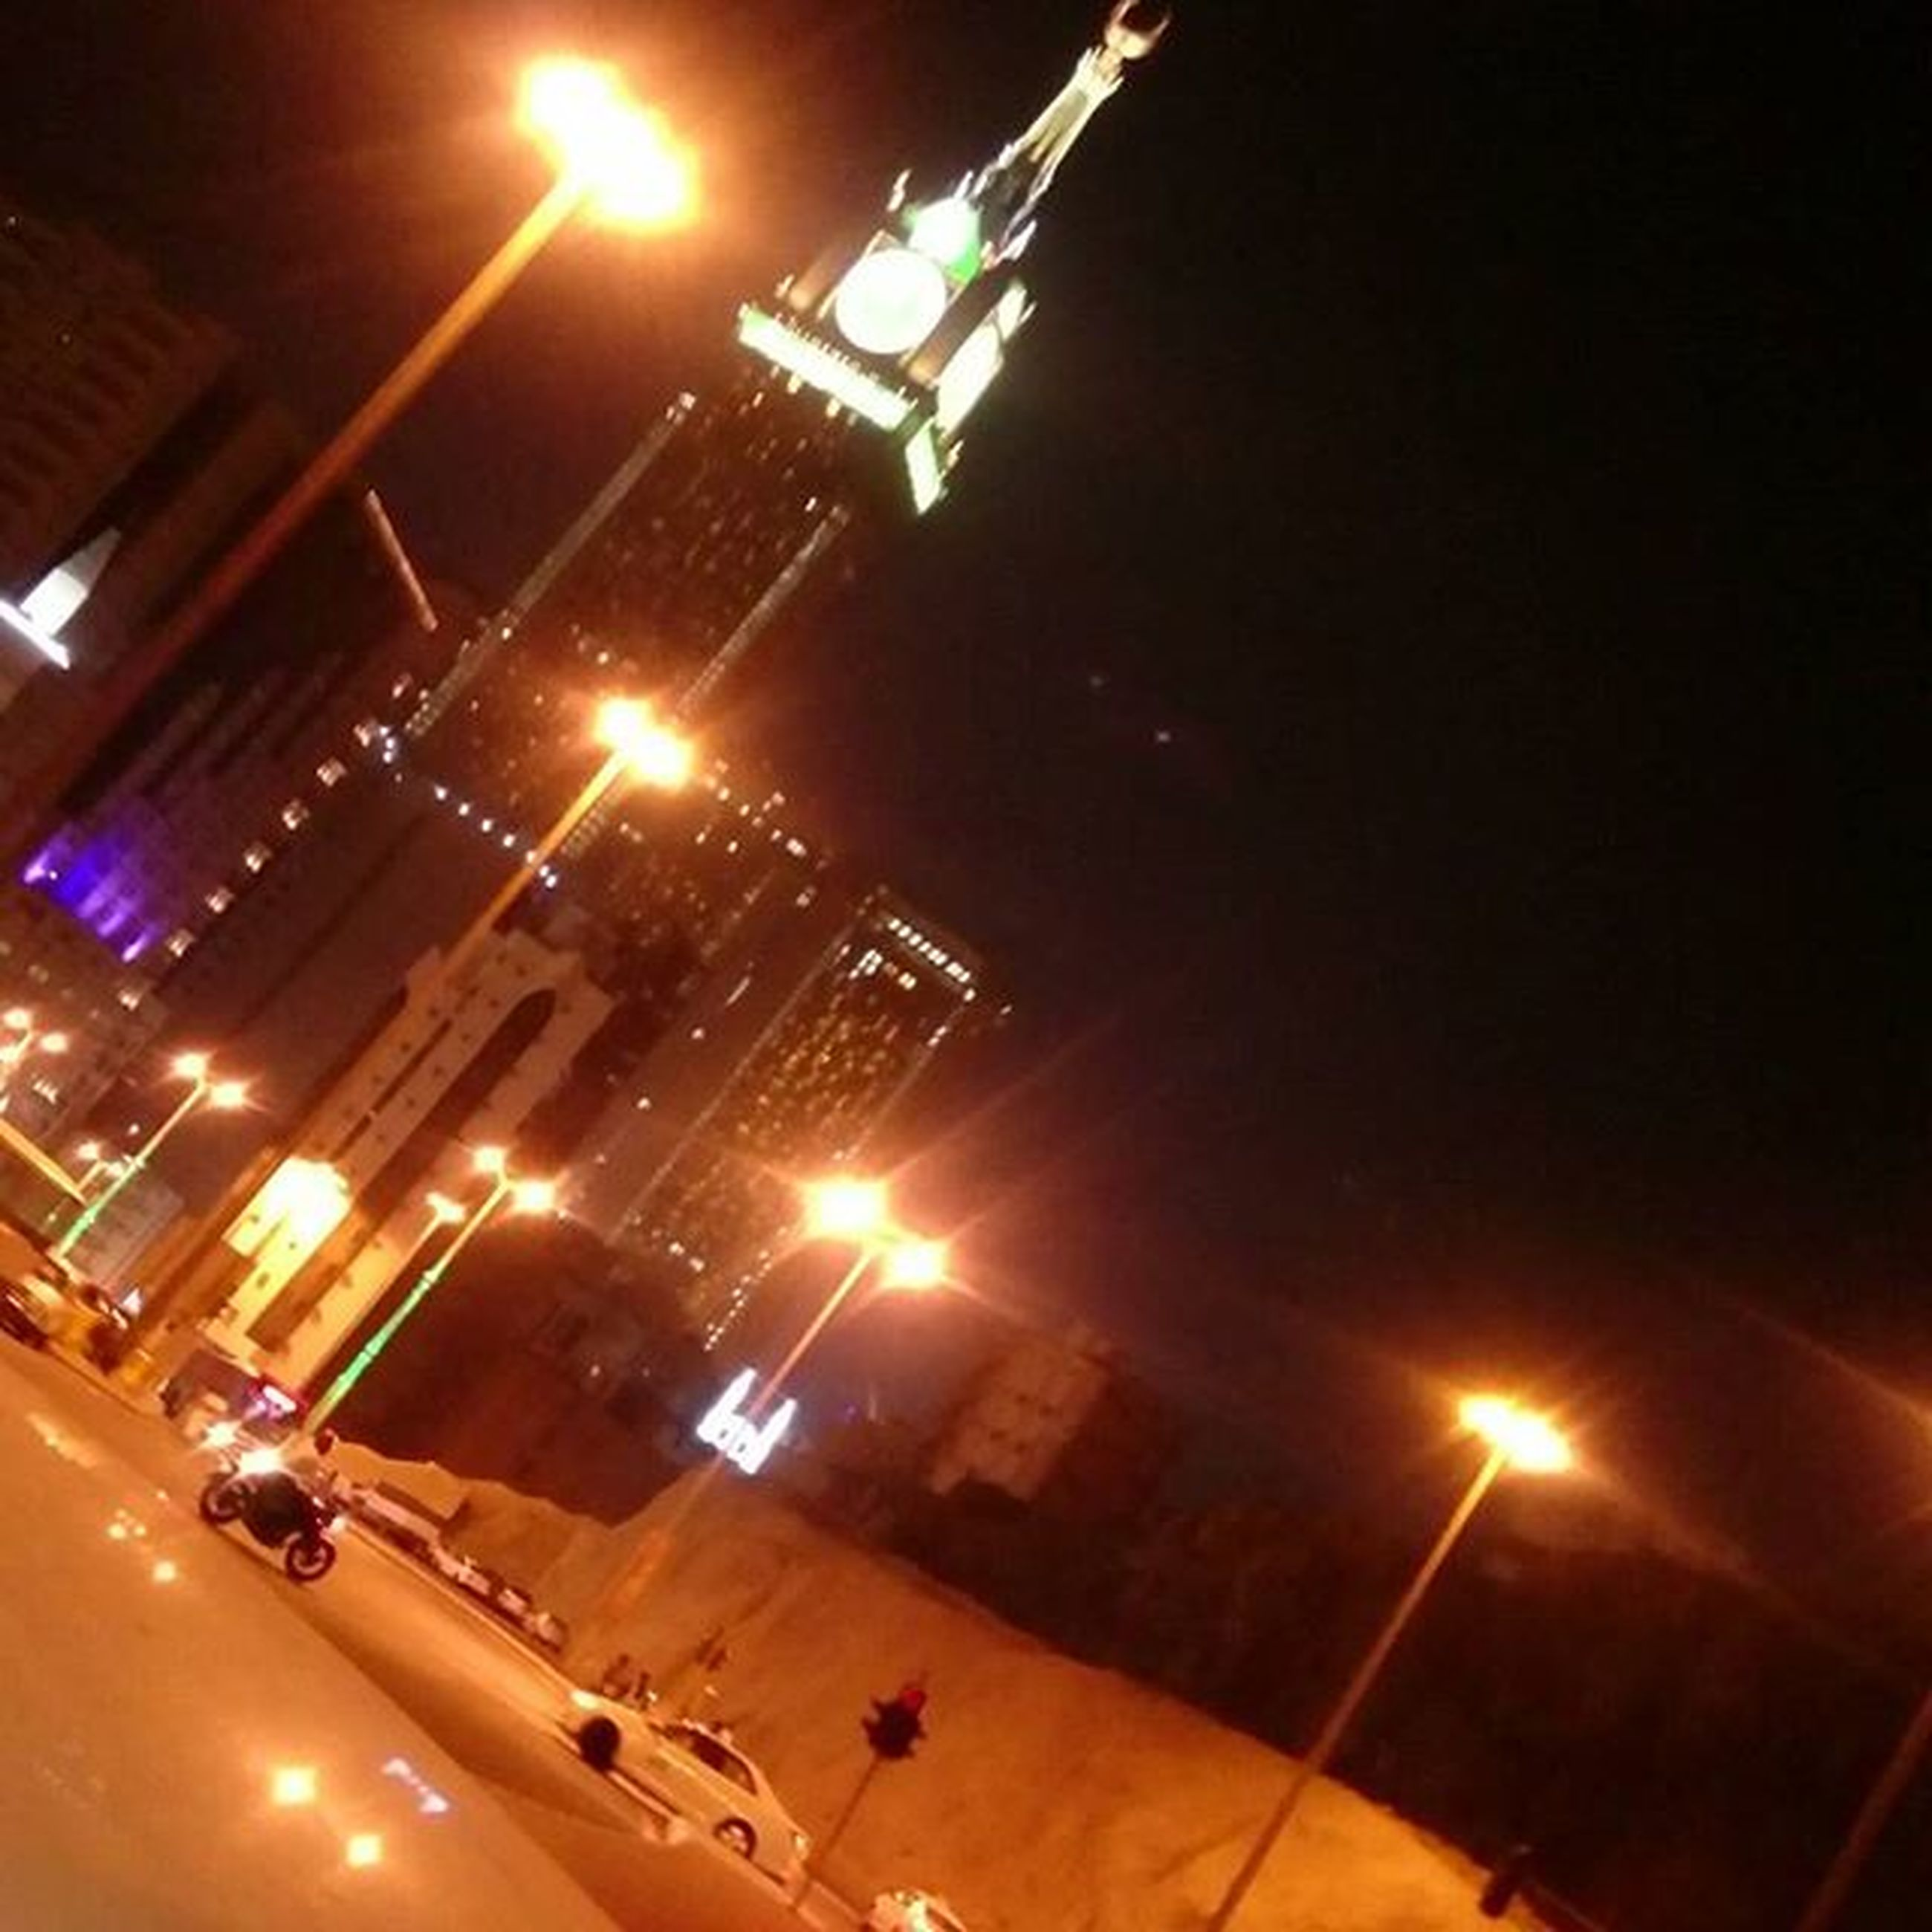 illuminated, night, architecture, building exterior, transportation, lighting equipment, built structure, city, mode of transport, light - natural phenomenon, low angle view, travel, no people, high angle view, city life, tilt, glowing, outdoors, street light, air vehicle